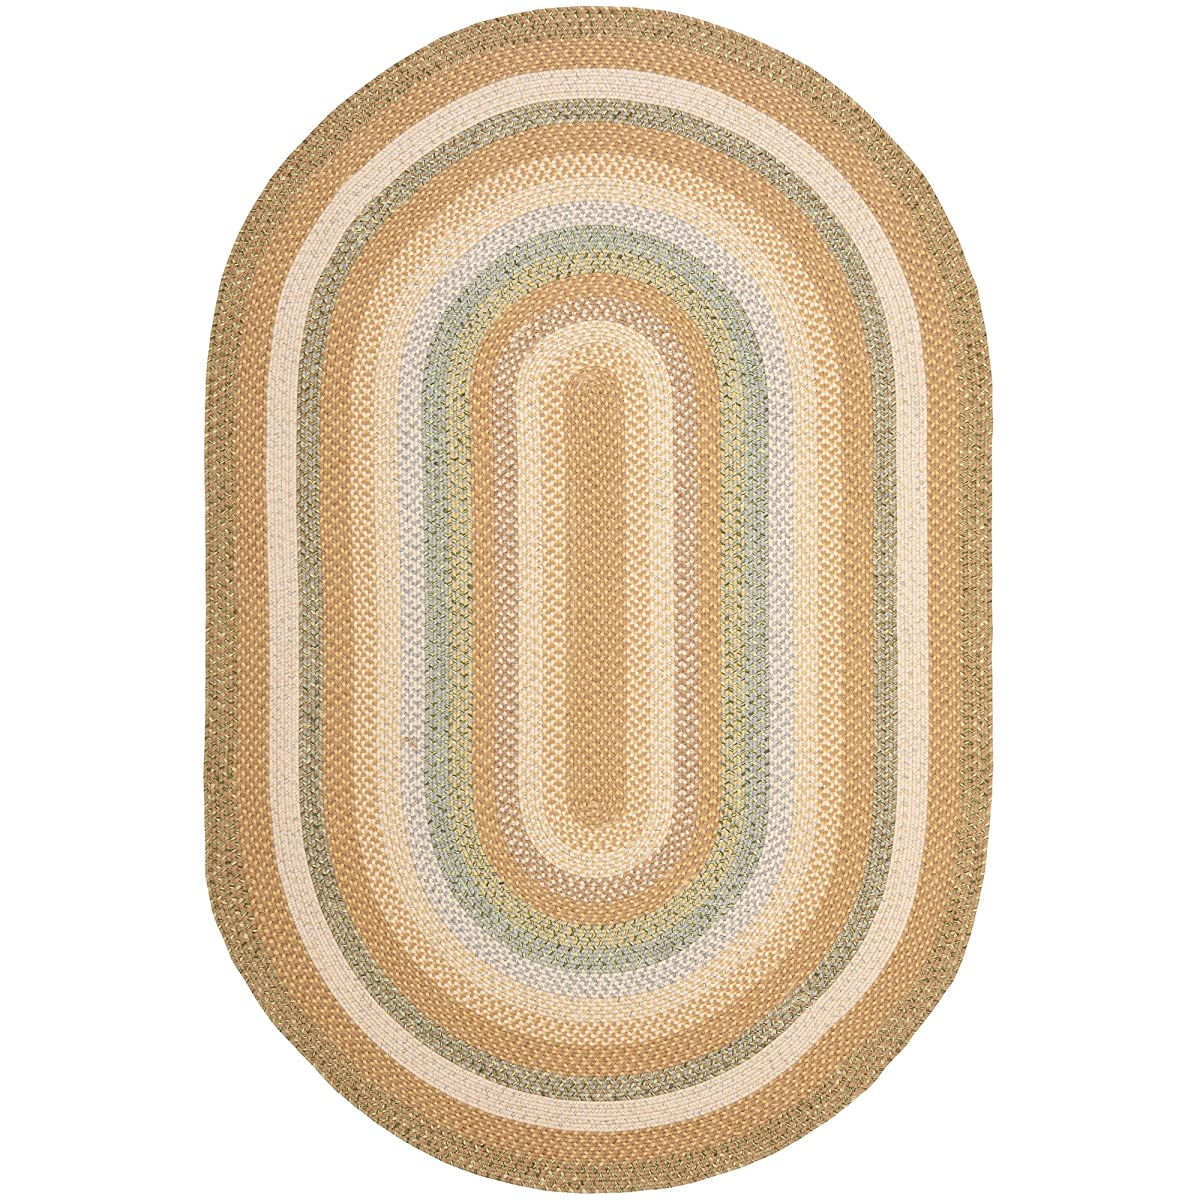 Safavieh Braided Collection BRD314A Hand Woven Tan and Multi Oval Area Rug (5 x 8 Oval)